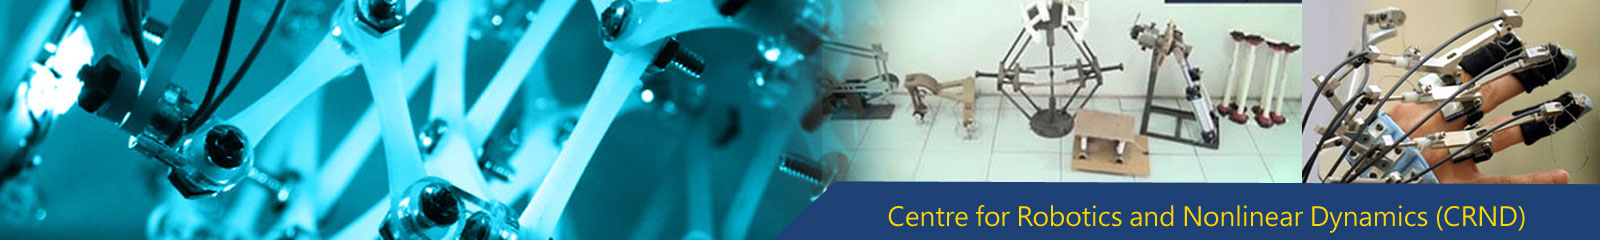 Projects : Centre for Robotics and Nonlinear Dynamics (CRND